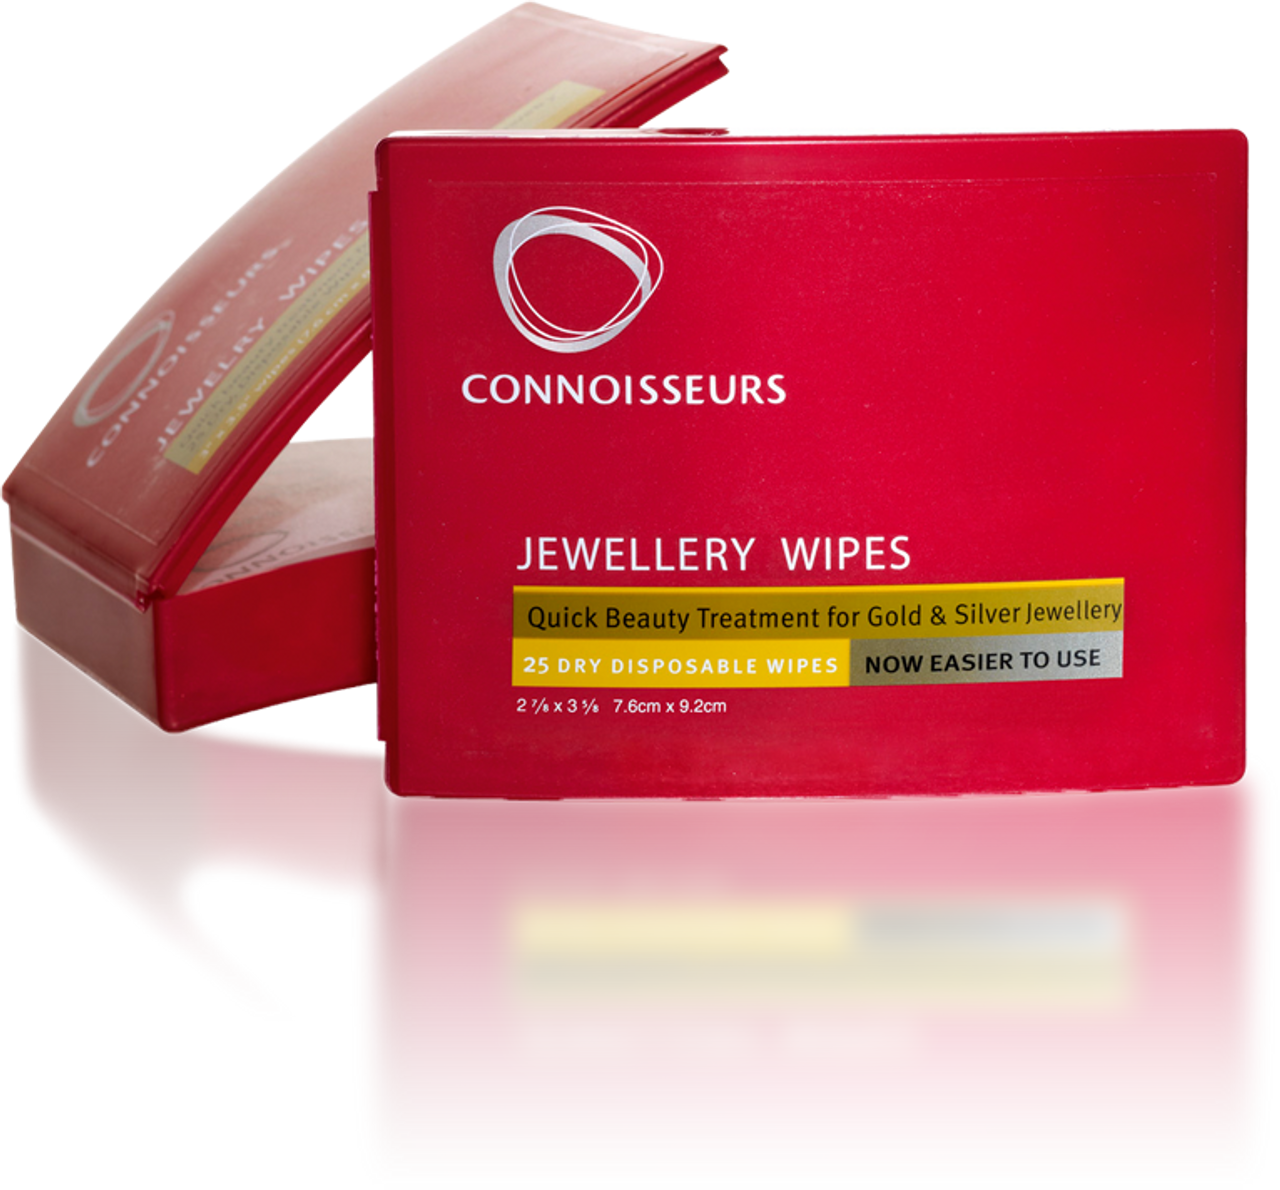 Connoisseurs Jewelry Wipes 25 Disposable Polishing Cloths for Gold & Silver  Jewelry, Rings, Watches